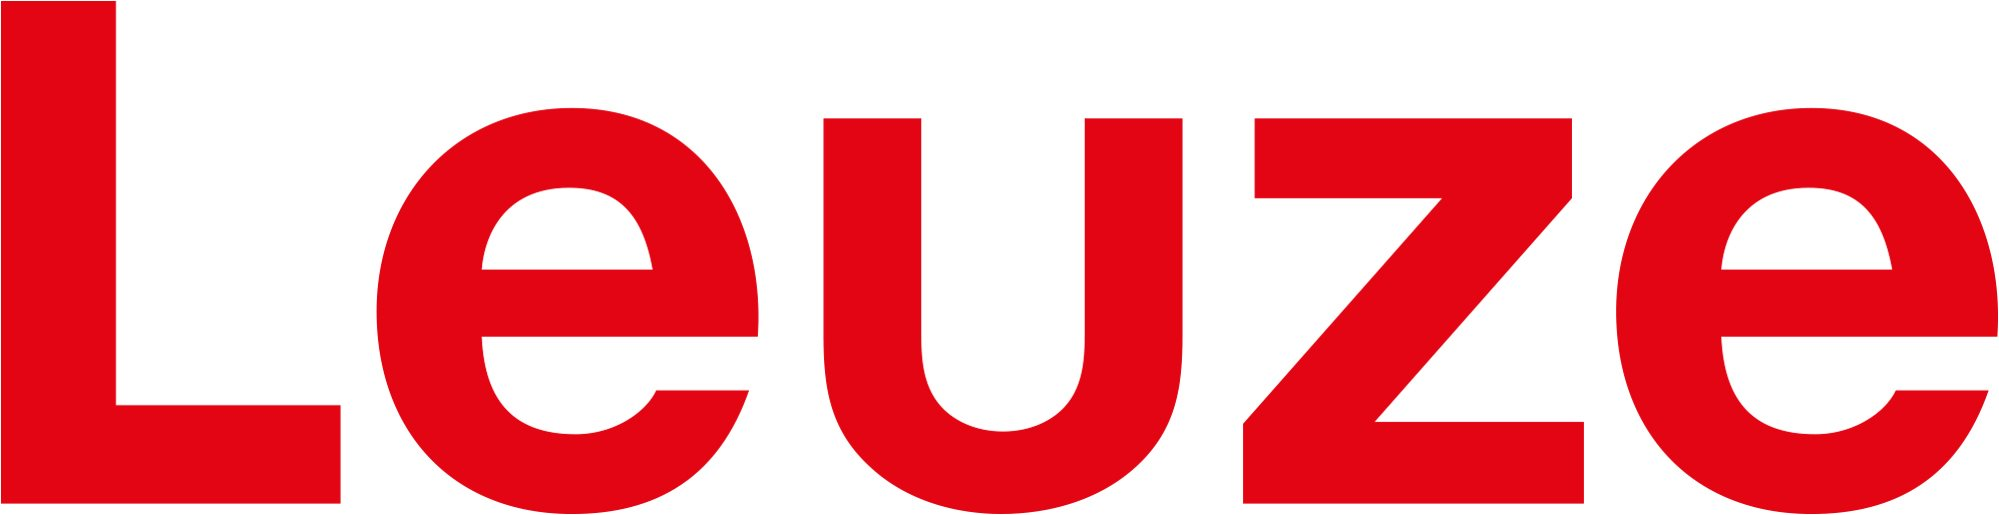 leuze_logo_red_rgb_large